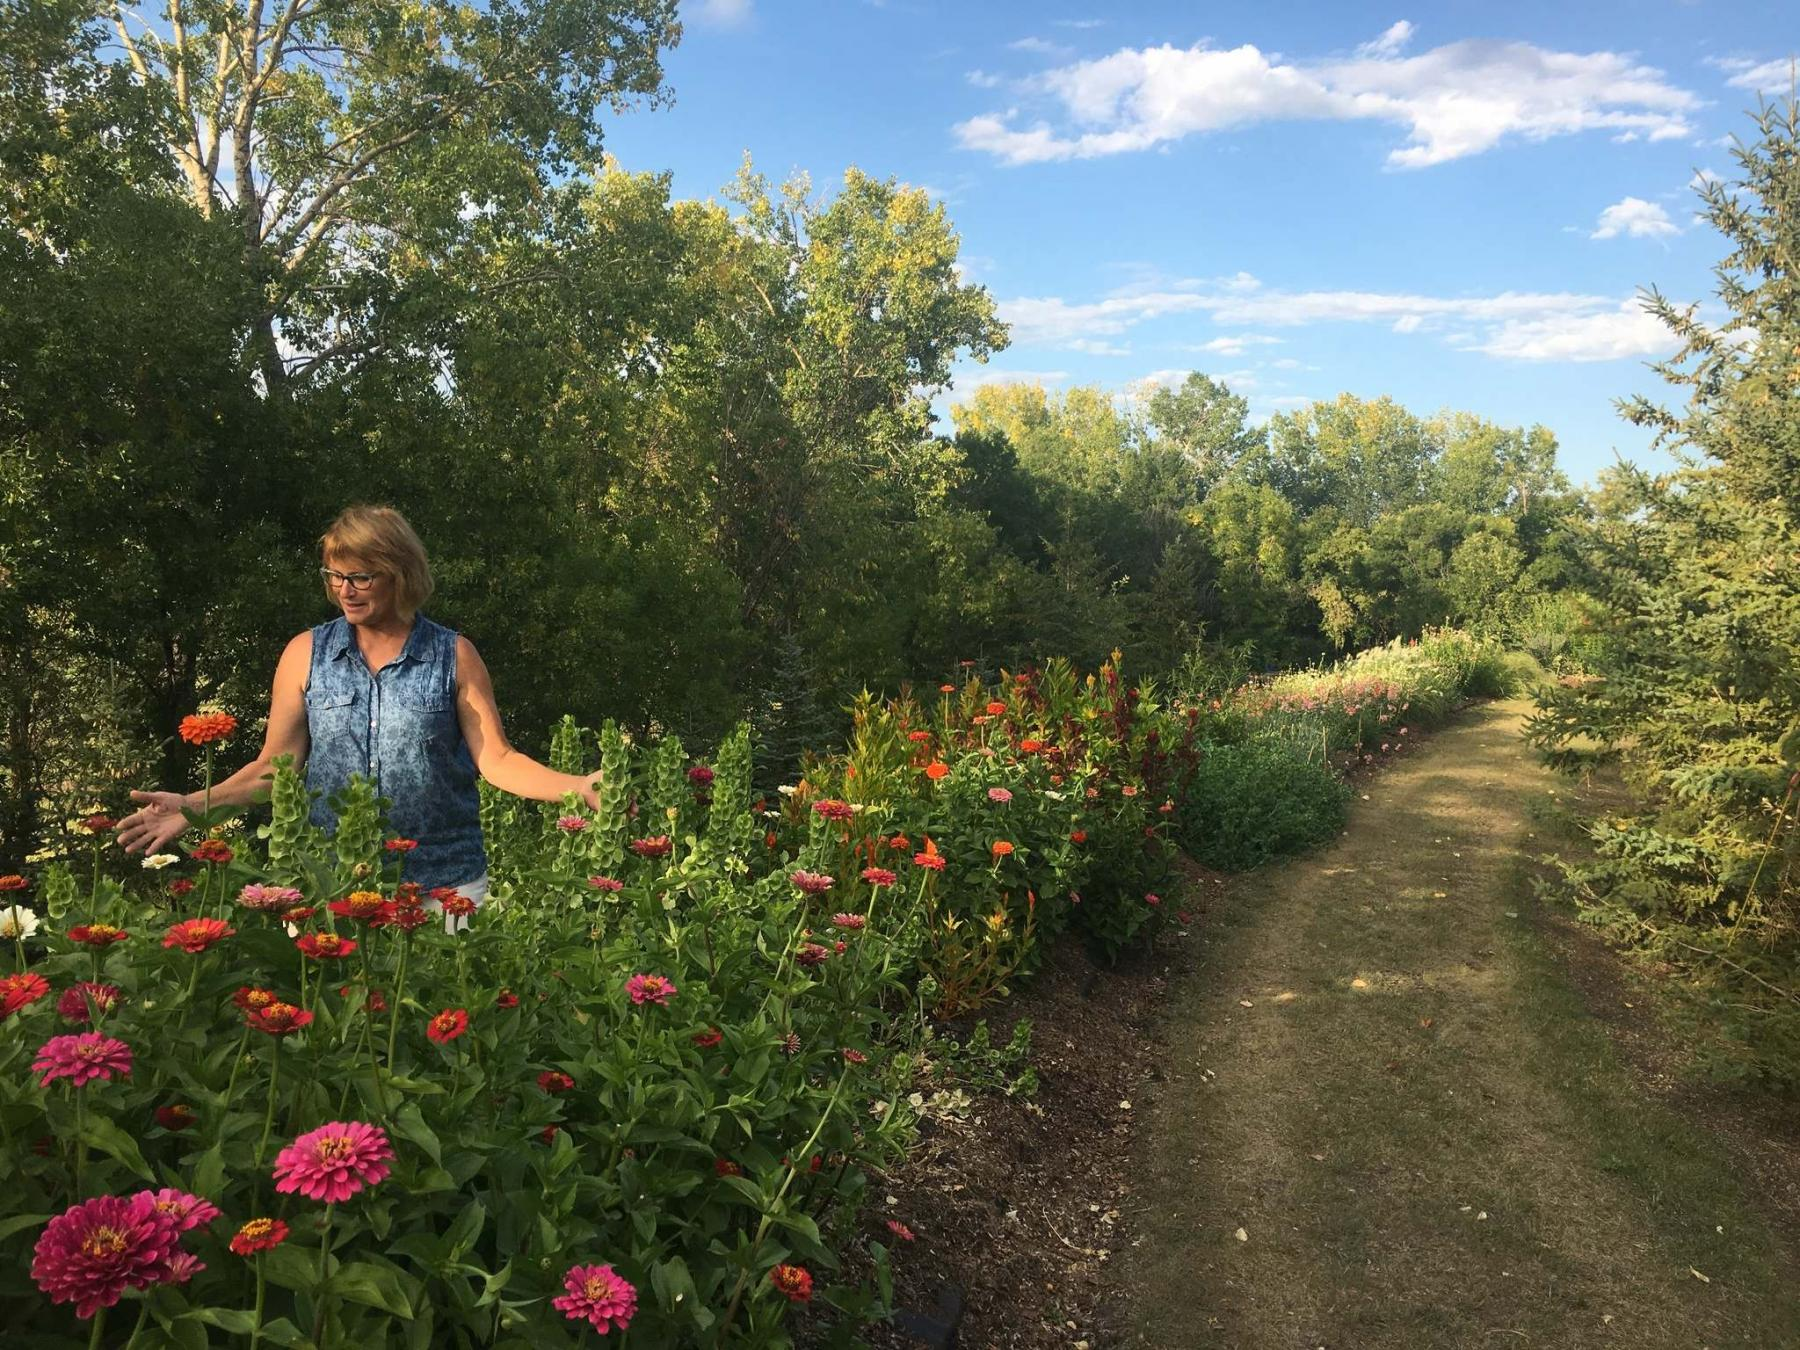 <p>Photos by Angela Neufeld</p><p>Terry Neufeld, owner of Sweet Petals Farm, is making plans to grow her flower business.</p>